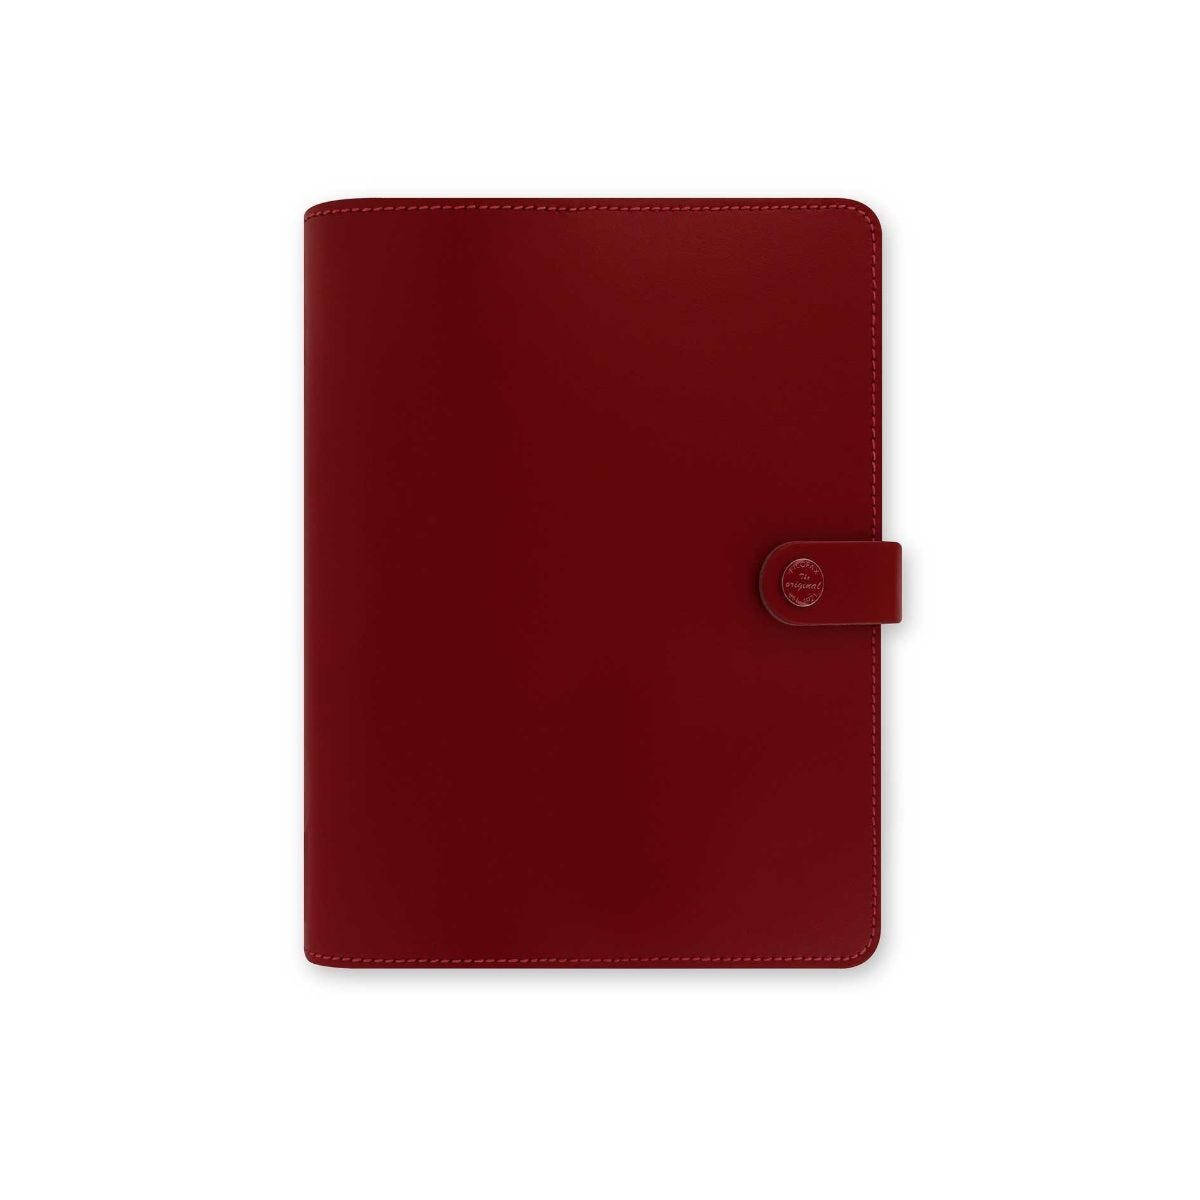 Filofax A5 The Original Organiser Pillarbox Red